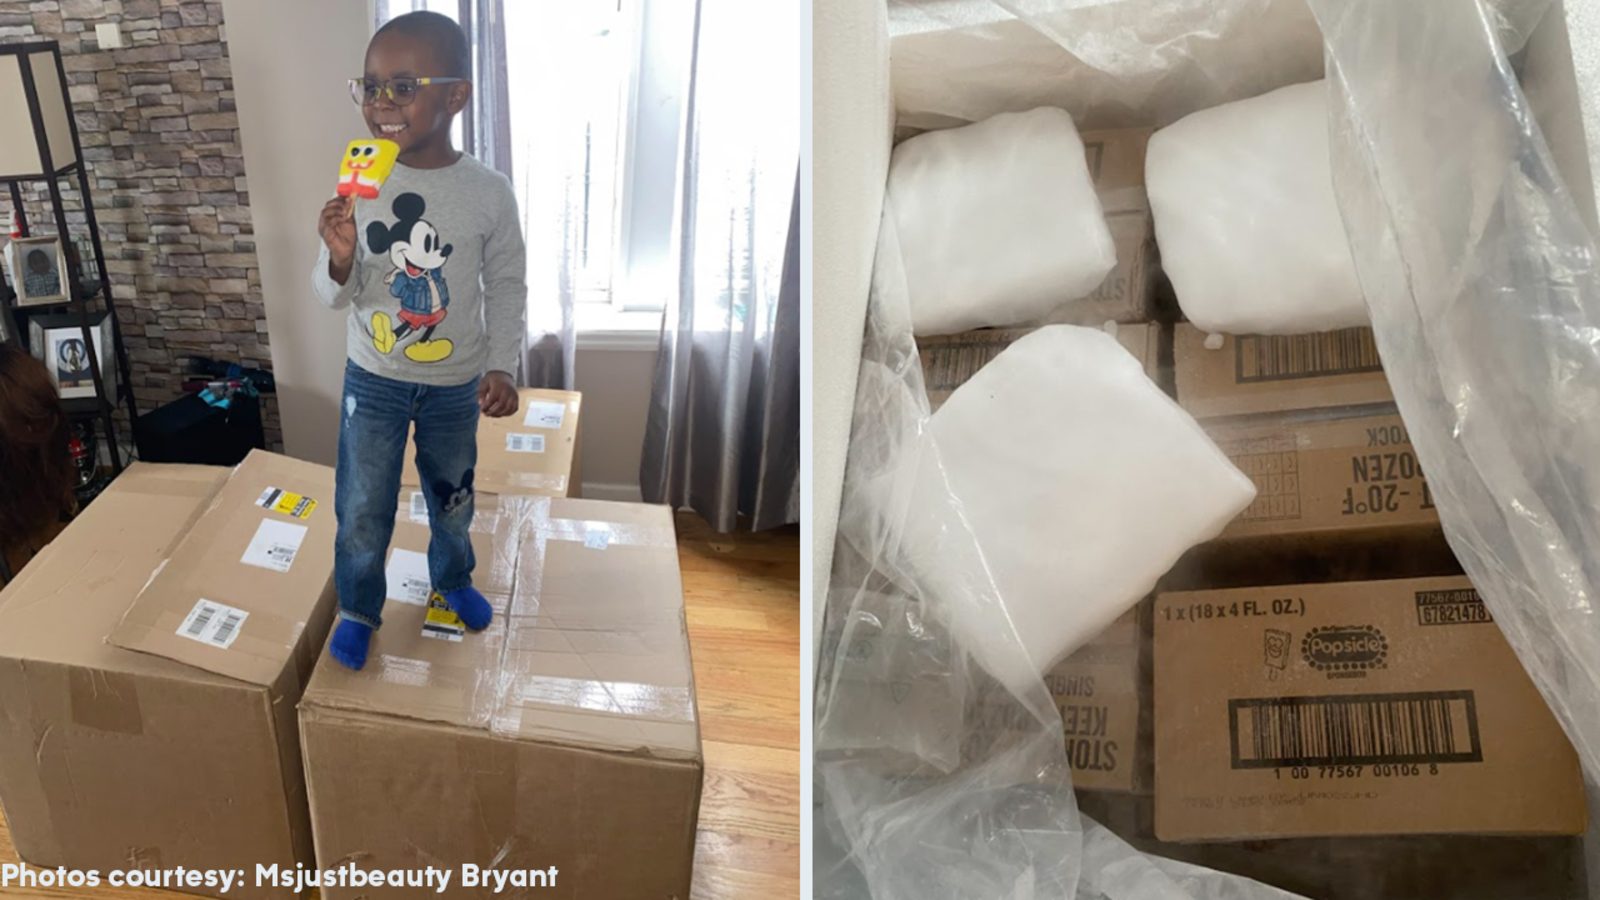 4-year-old had the $2600 worth of SpongeBob popsicles delivered to his aunt's house